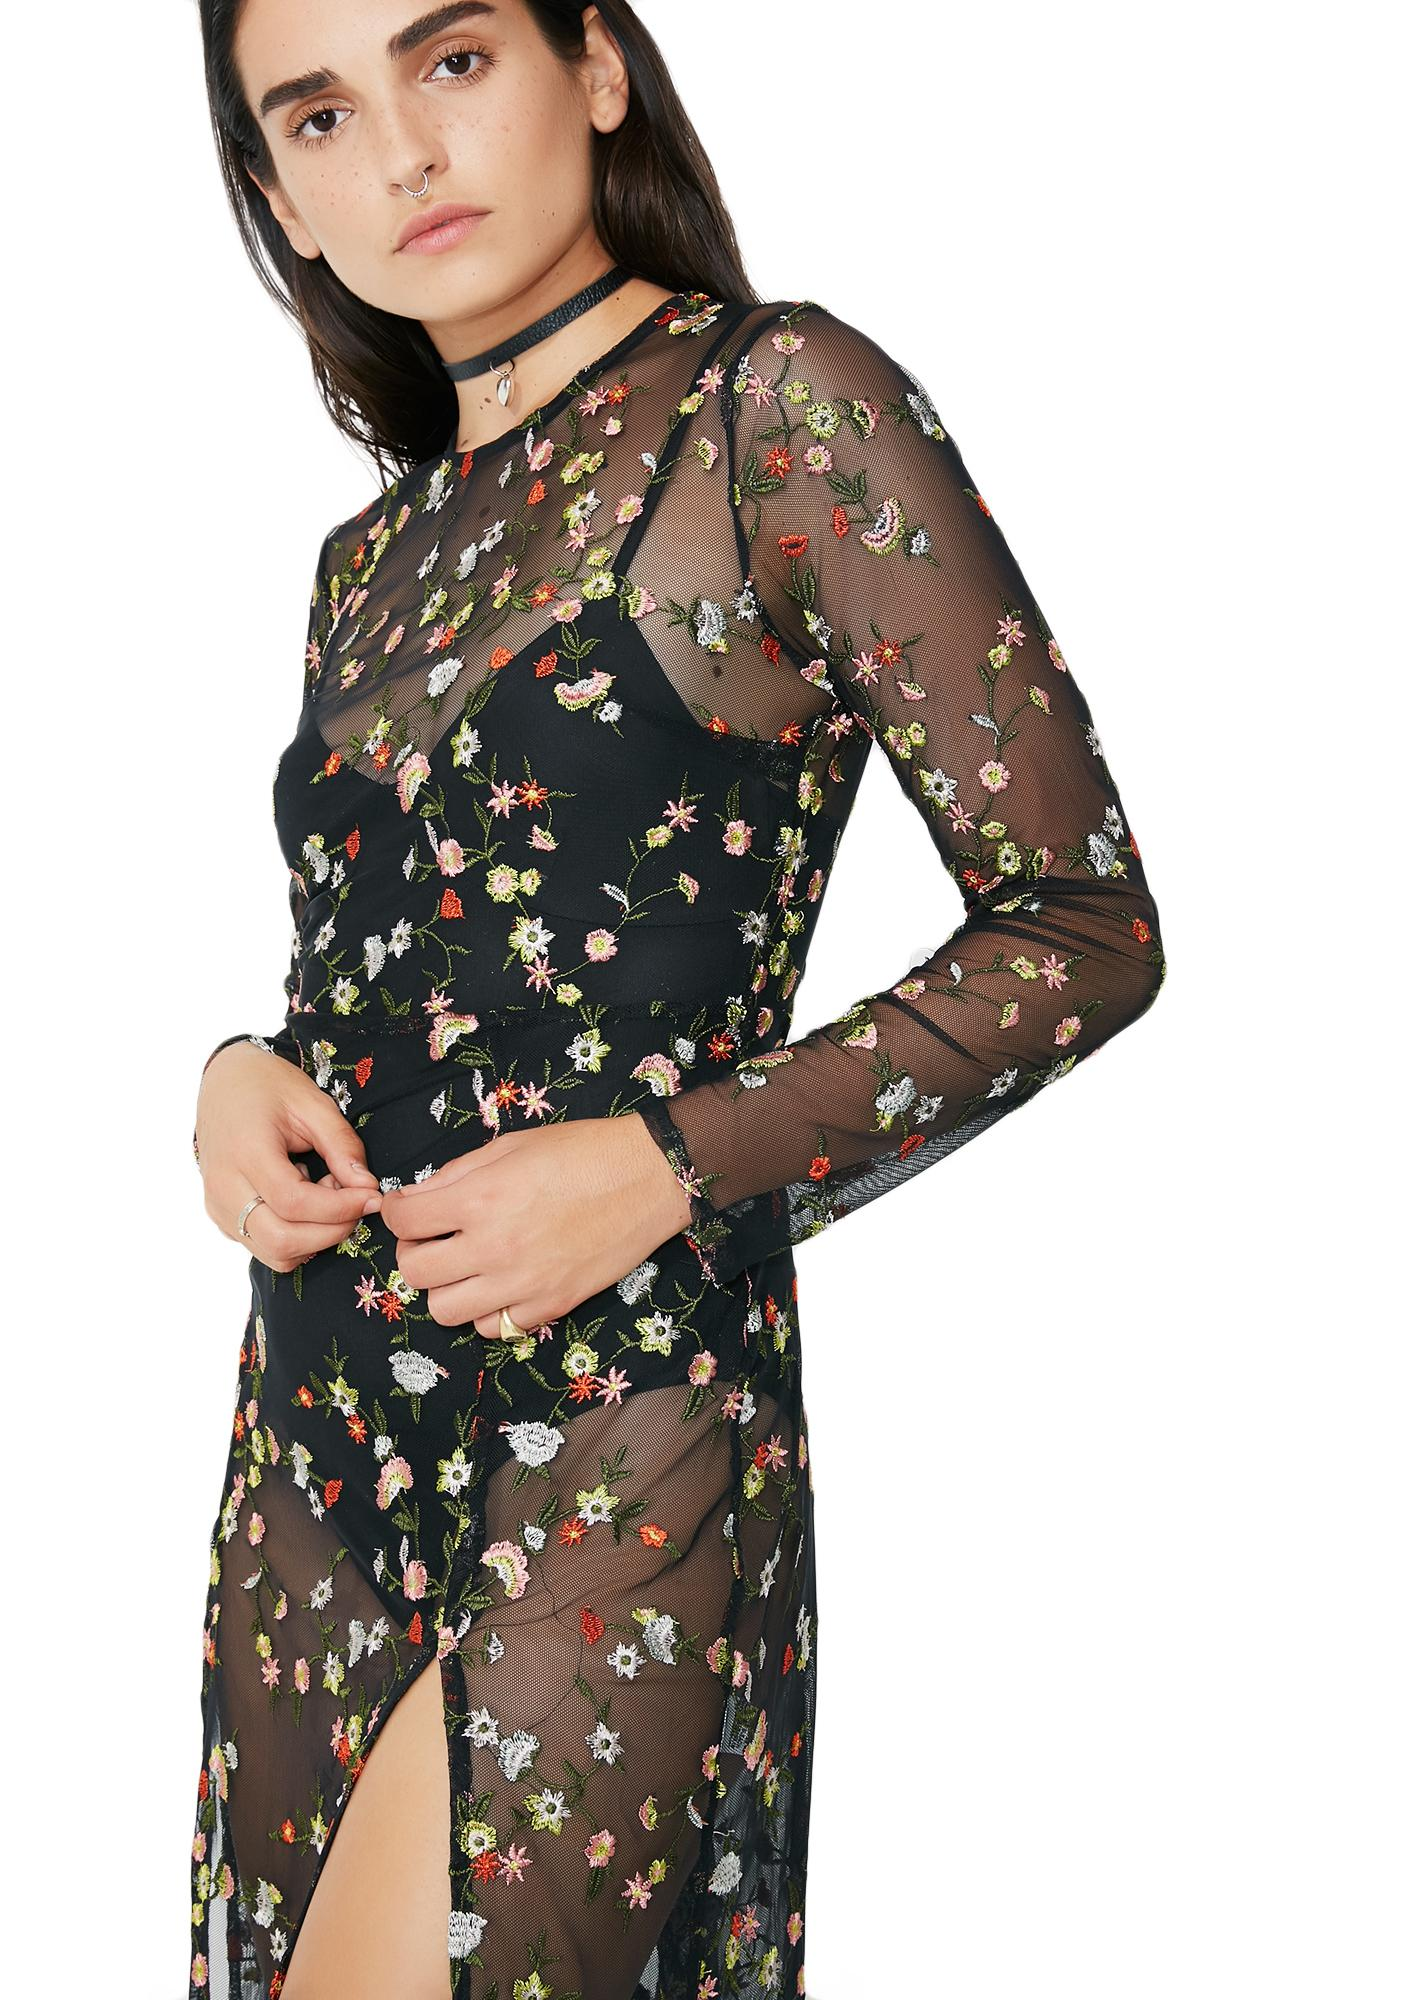 Botanical Beauty Sheer Dress